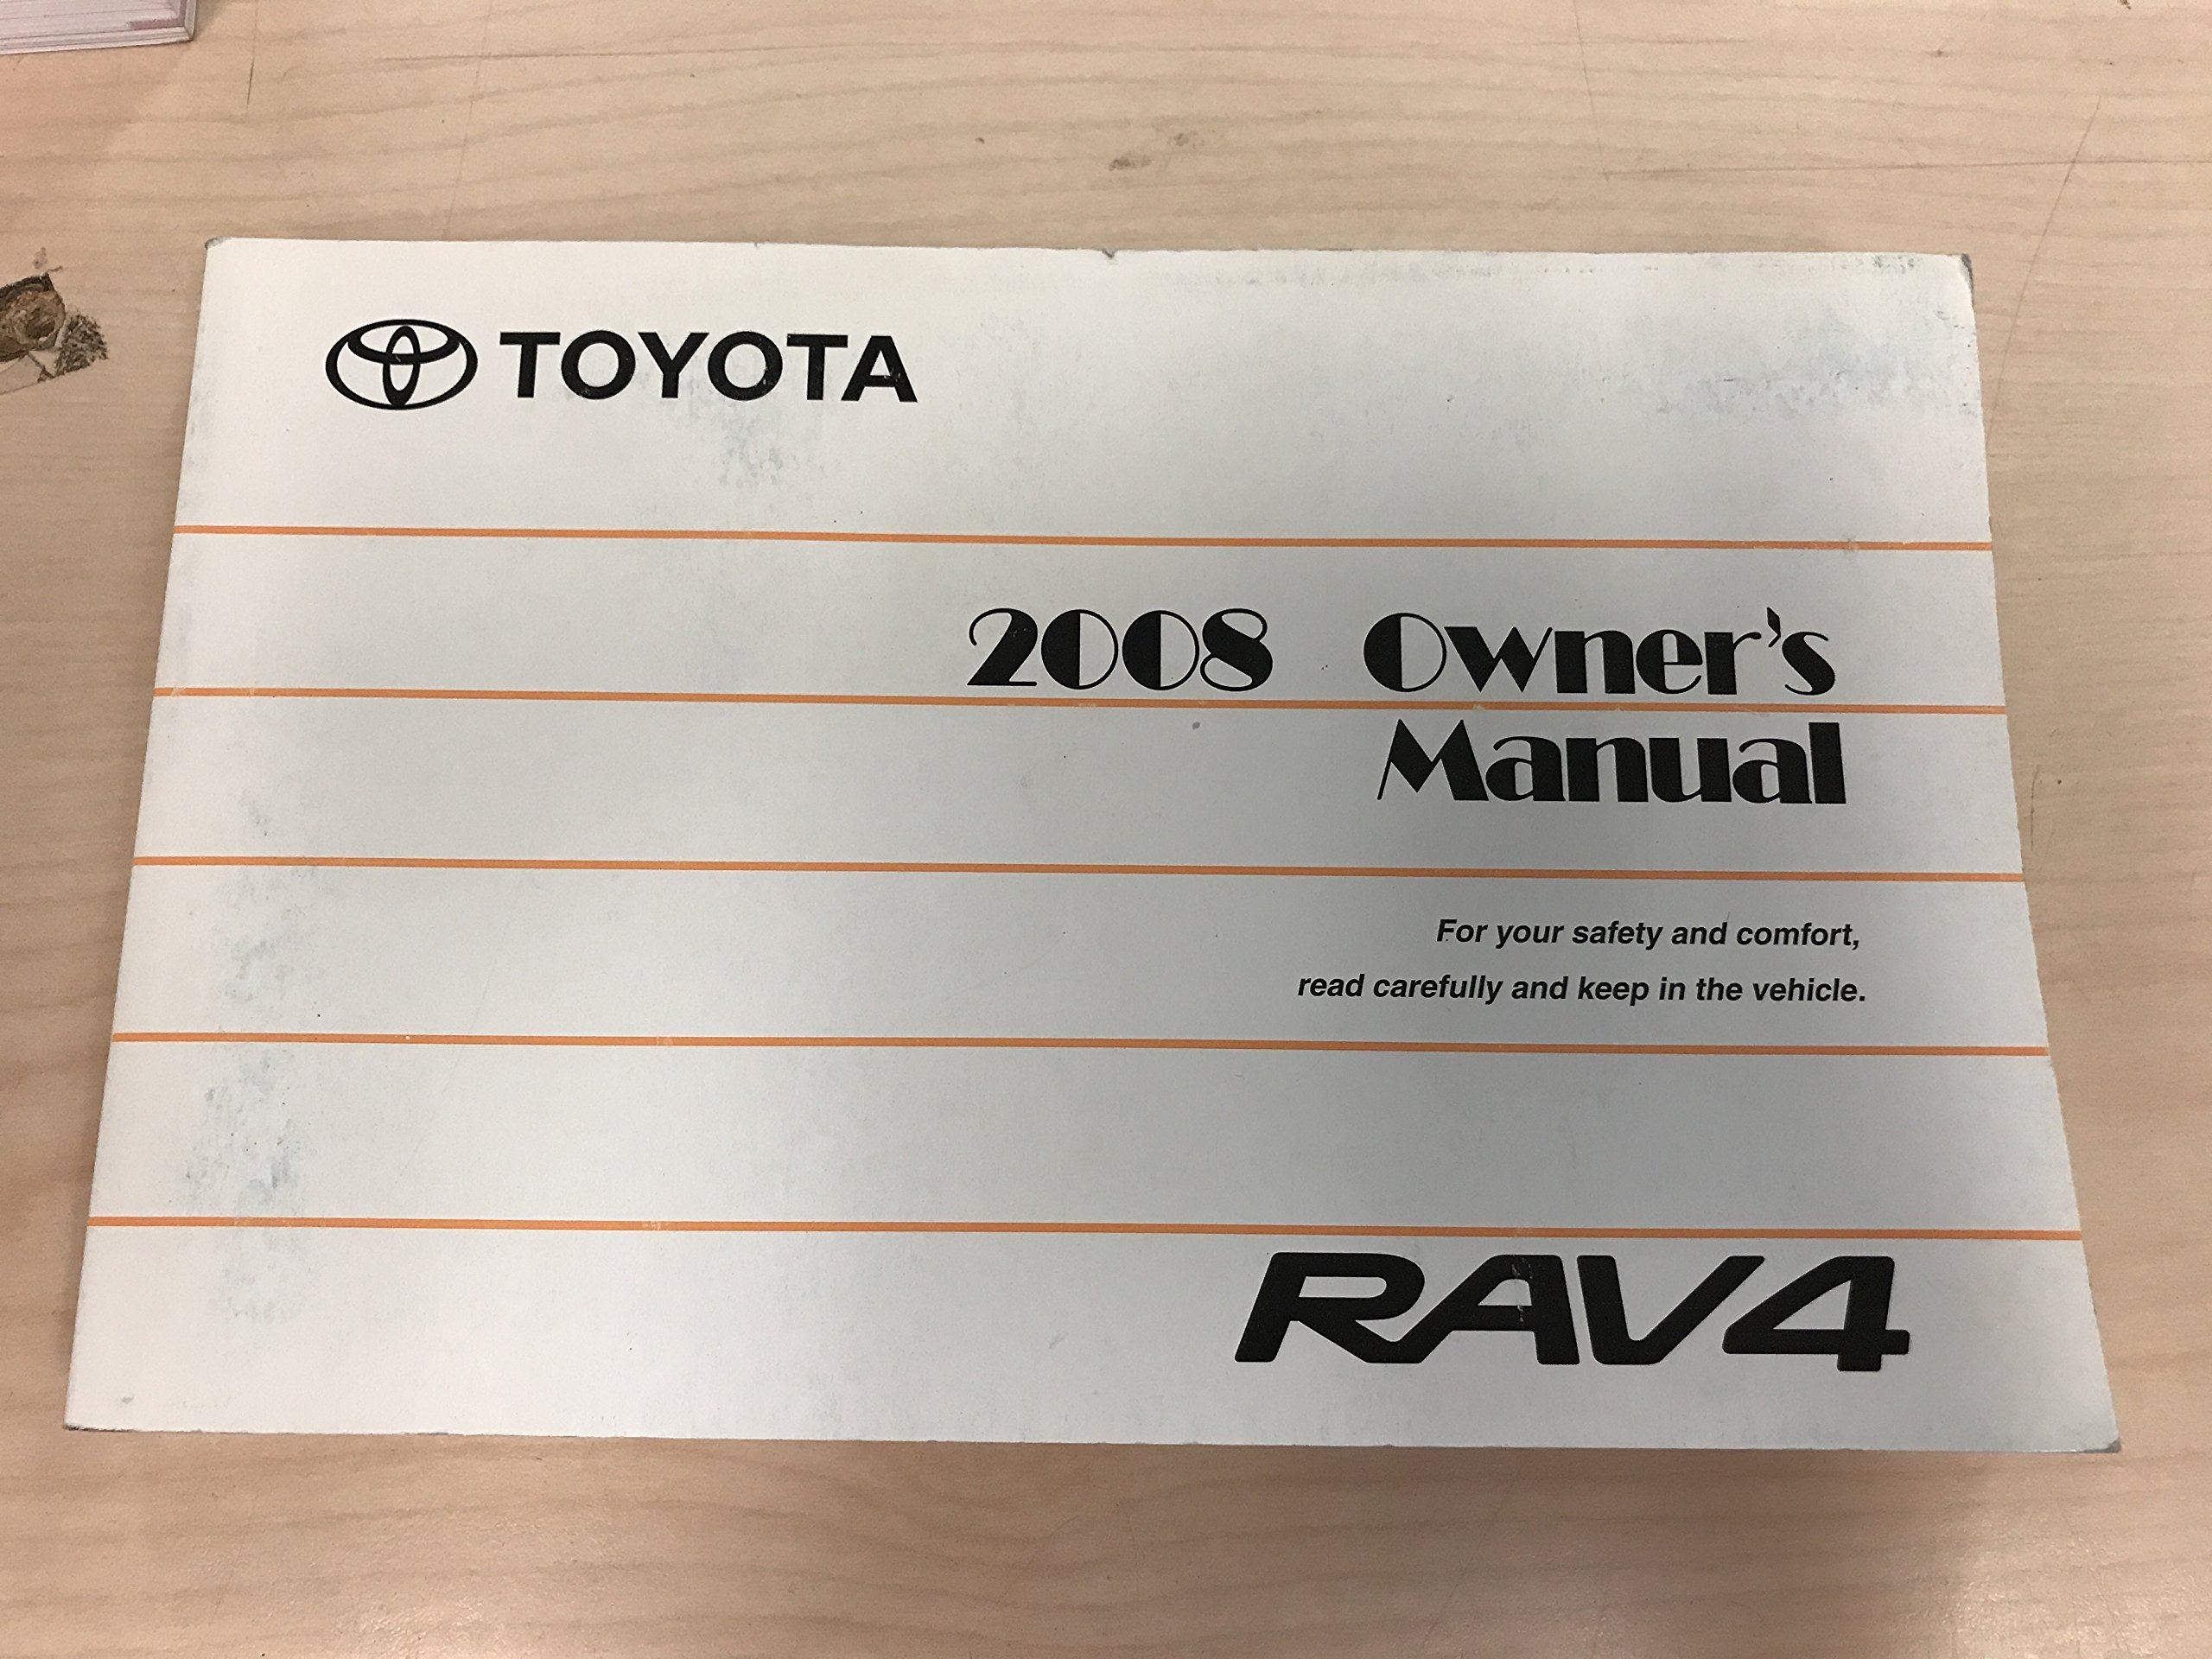 2008 Toyota Rav4 Owners Manual Pdf